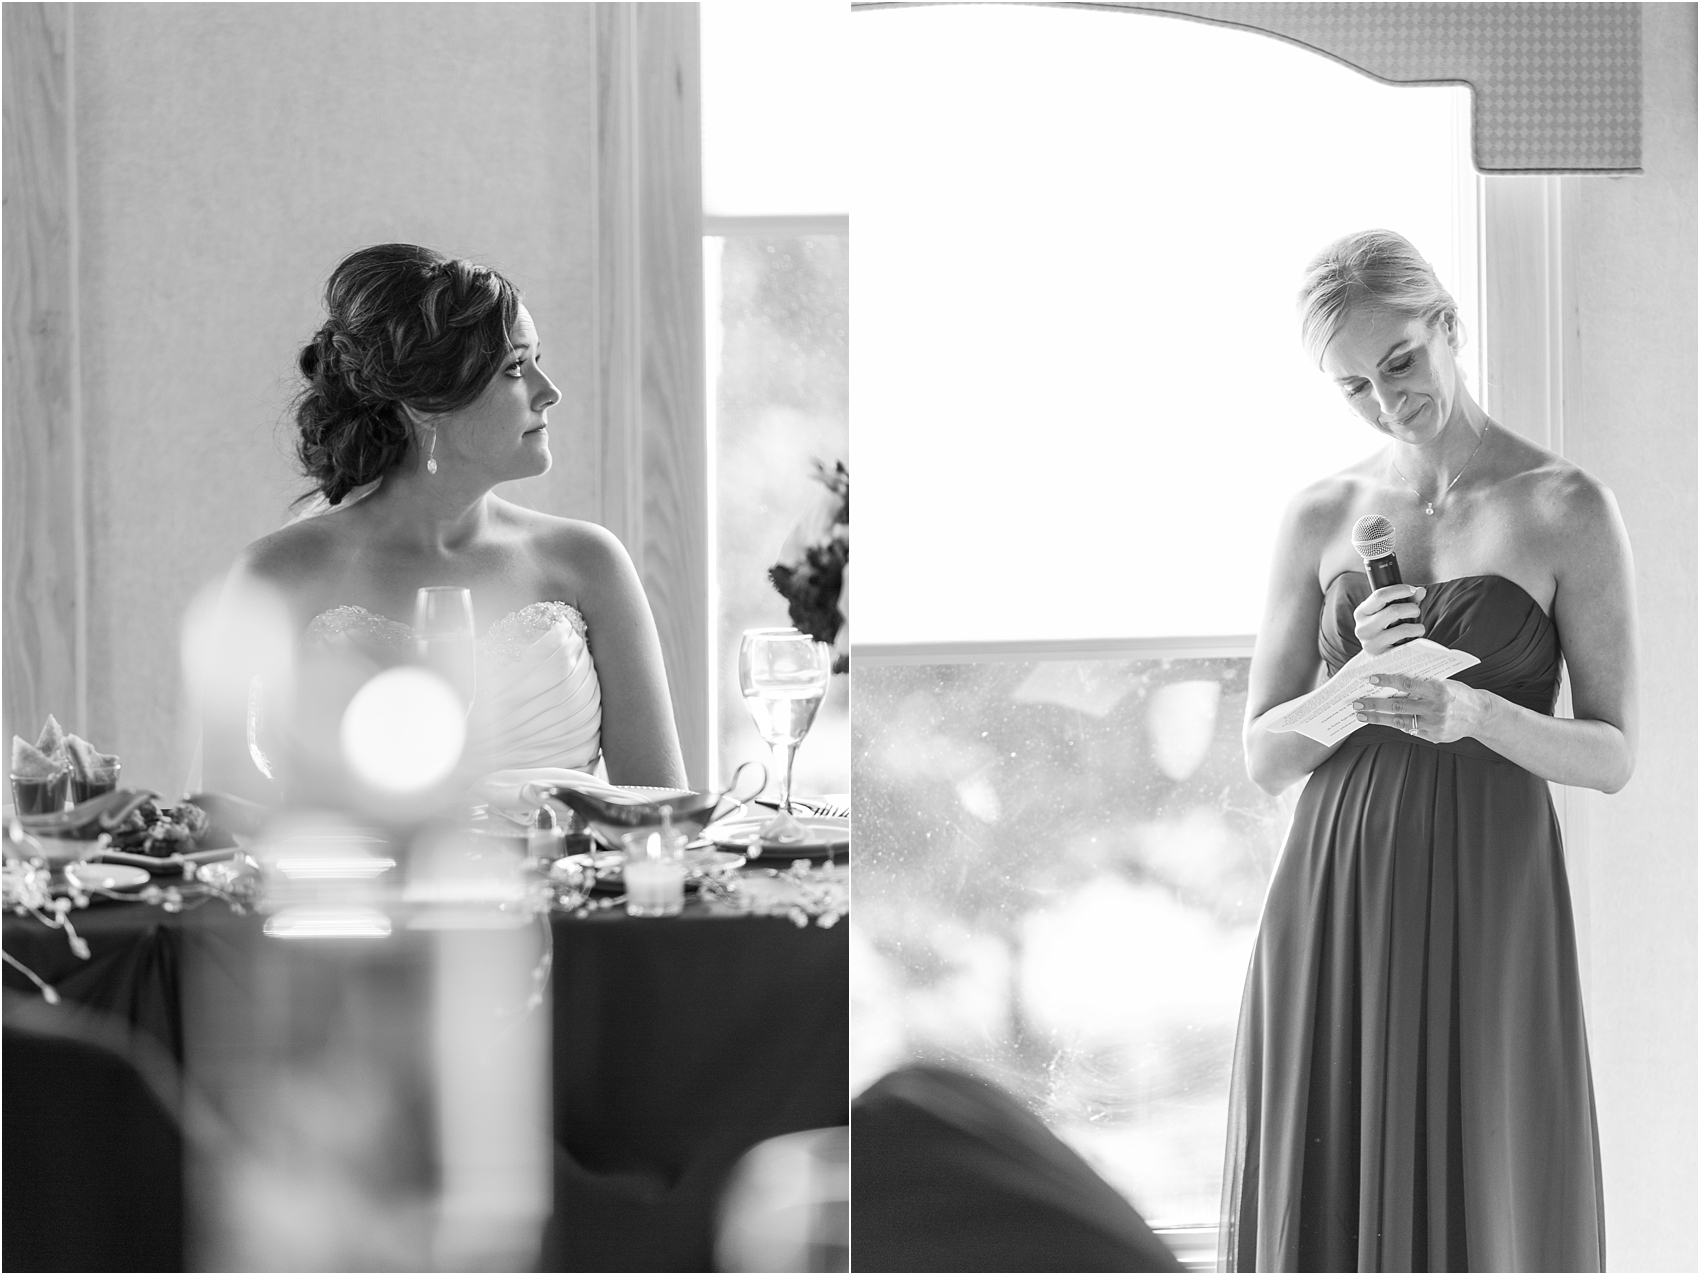 classic-wedding-photos-at-great-oaks-country-club-in-rochester-hills-mi-by-courtney-carolyn-photography_0100.jpg